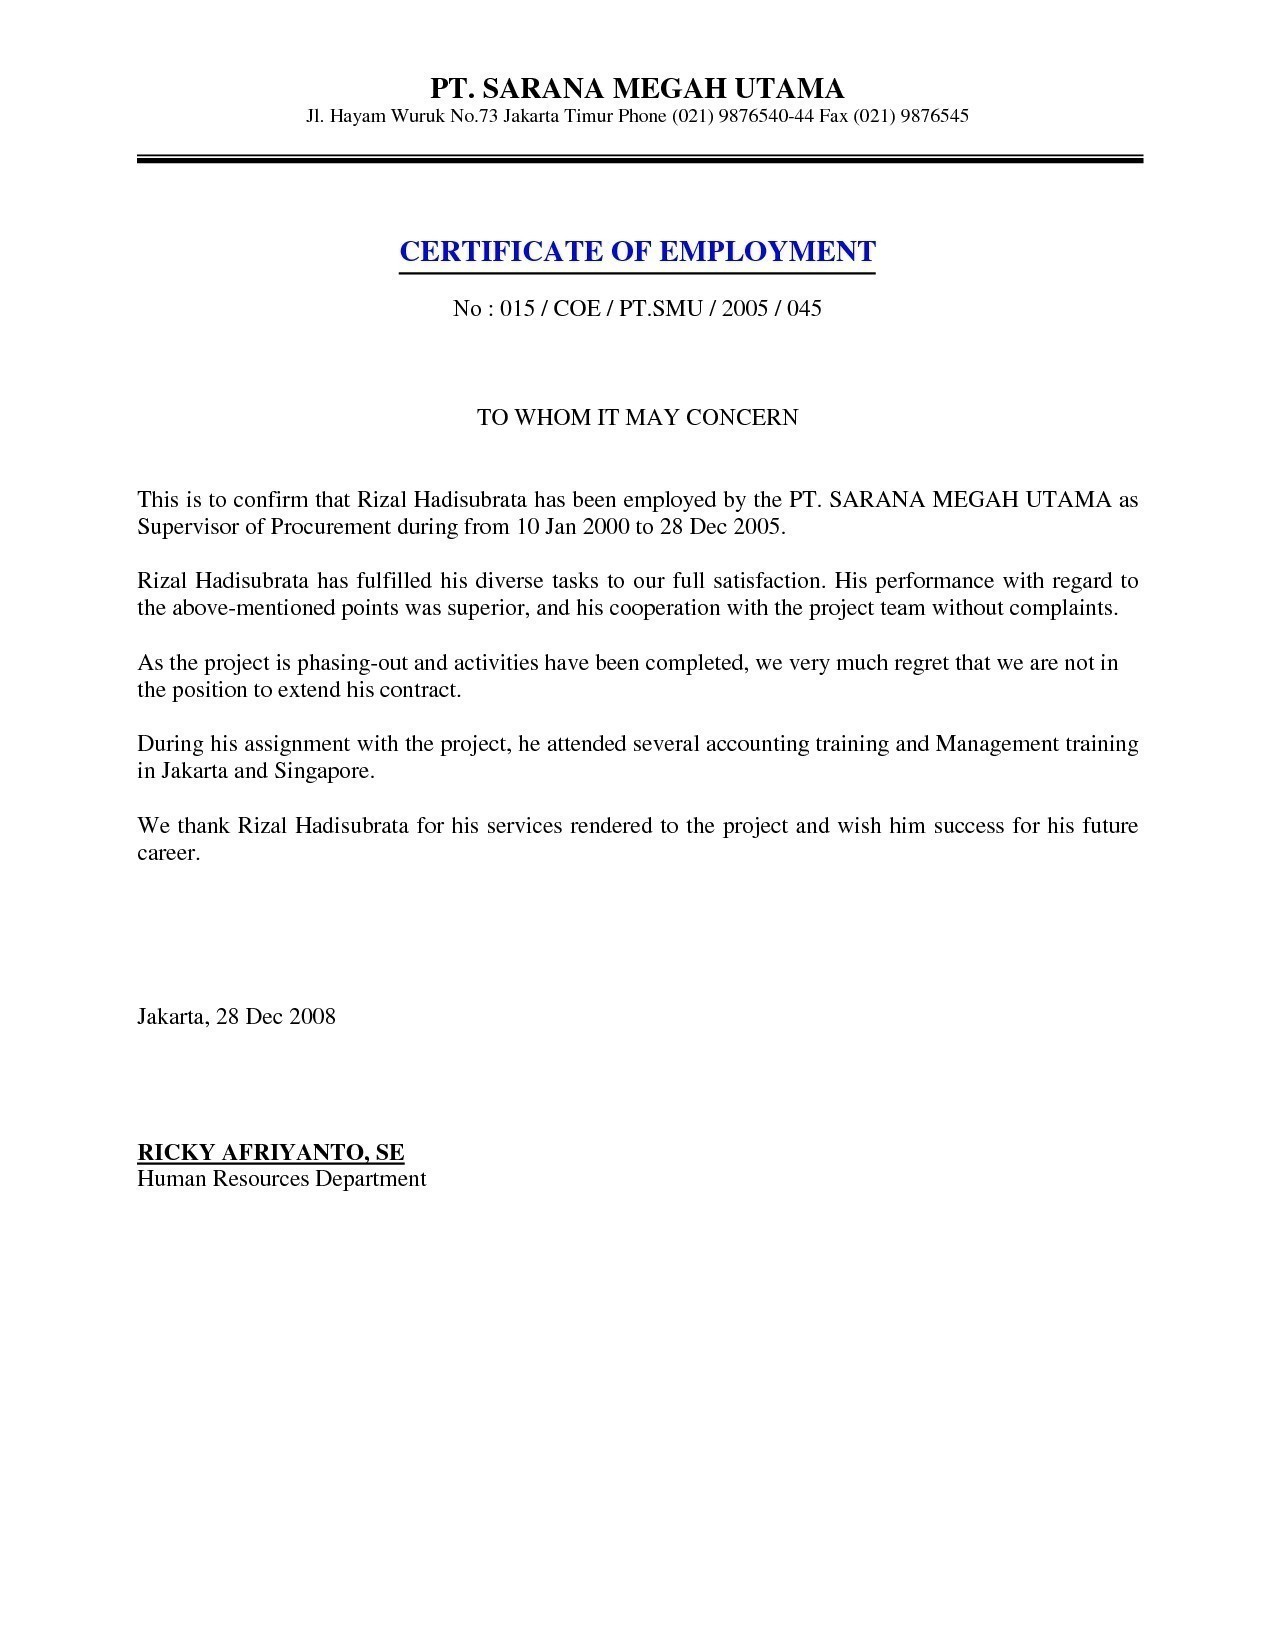 Salary Verification Letter Template - Sample Certificate Employment with Salary Indicated Best